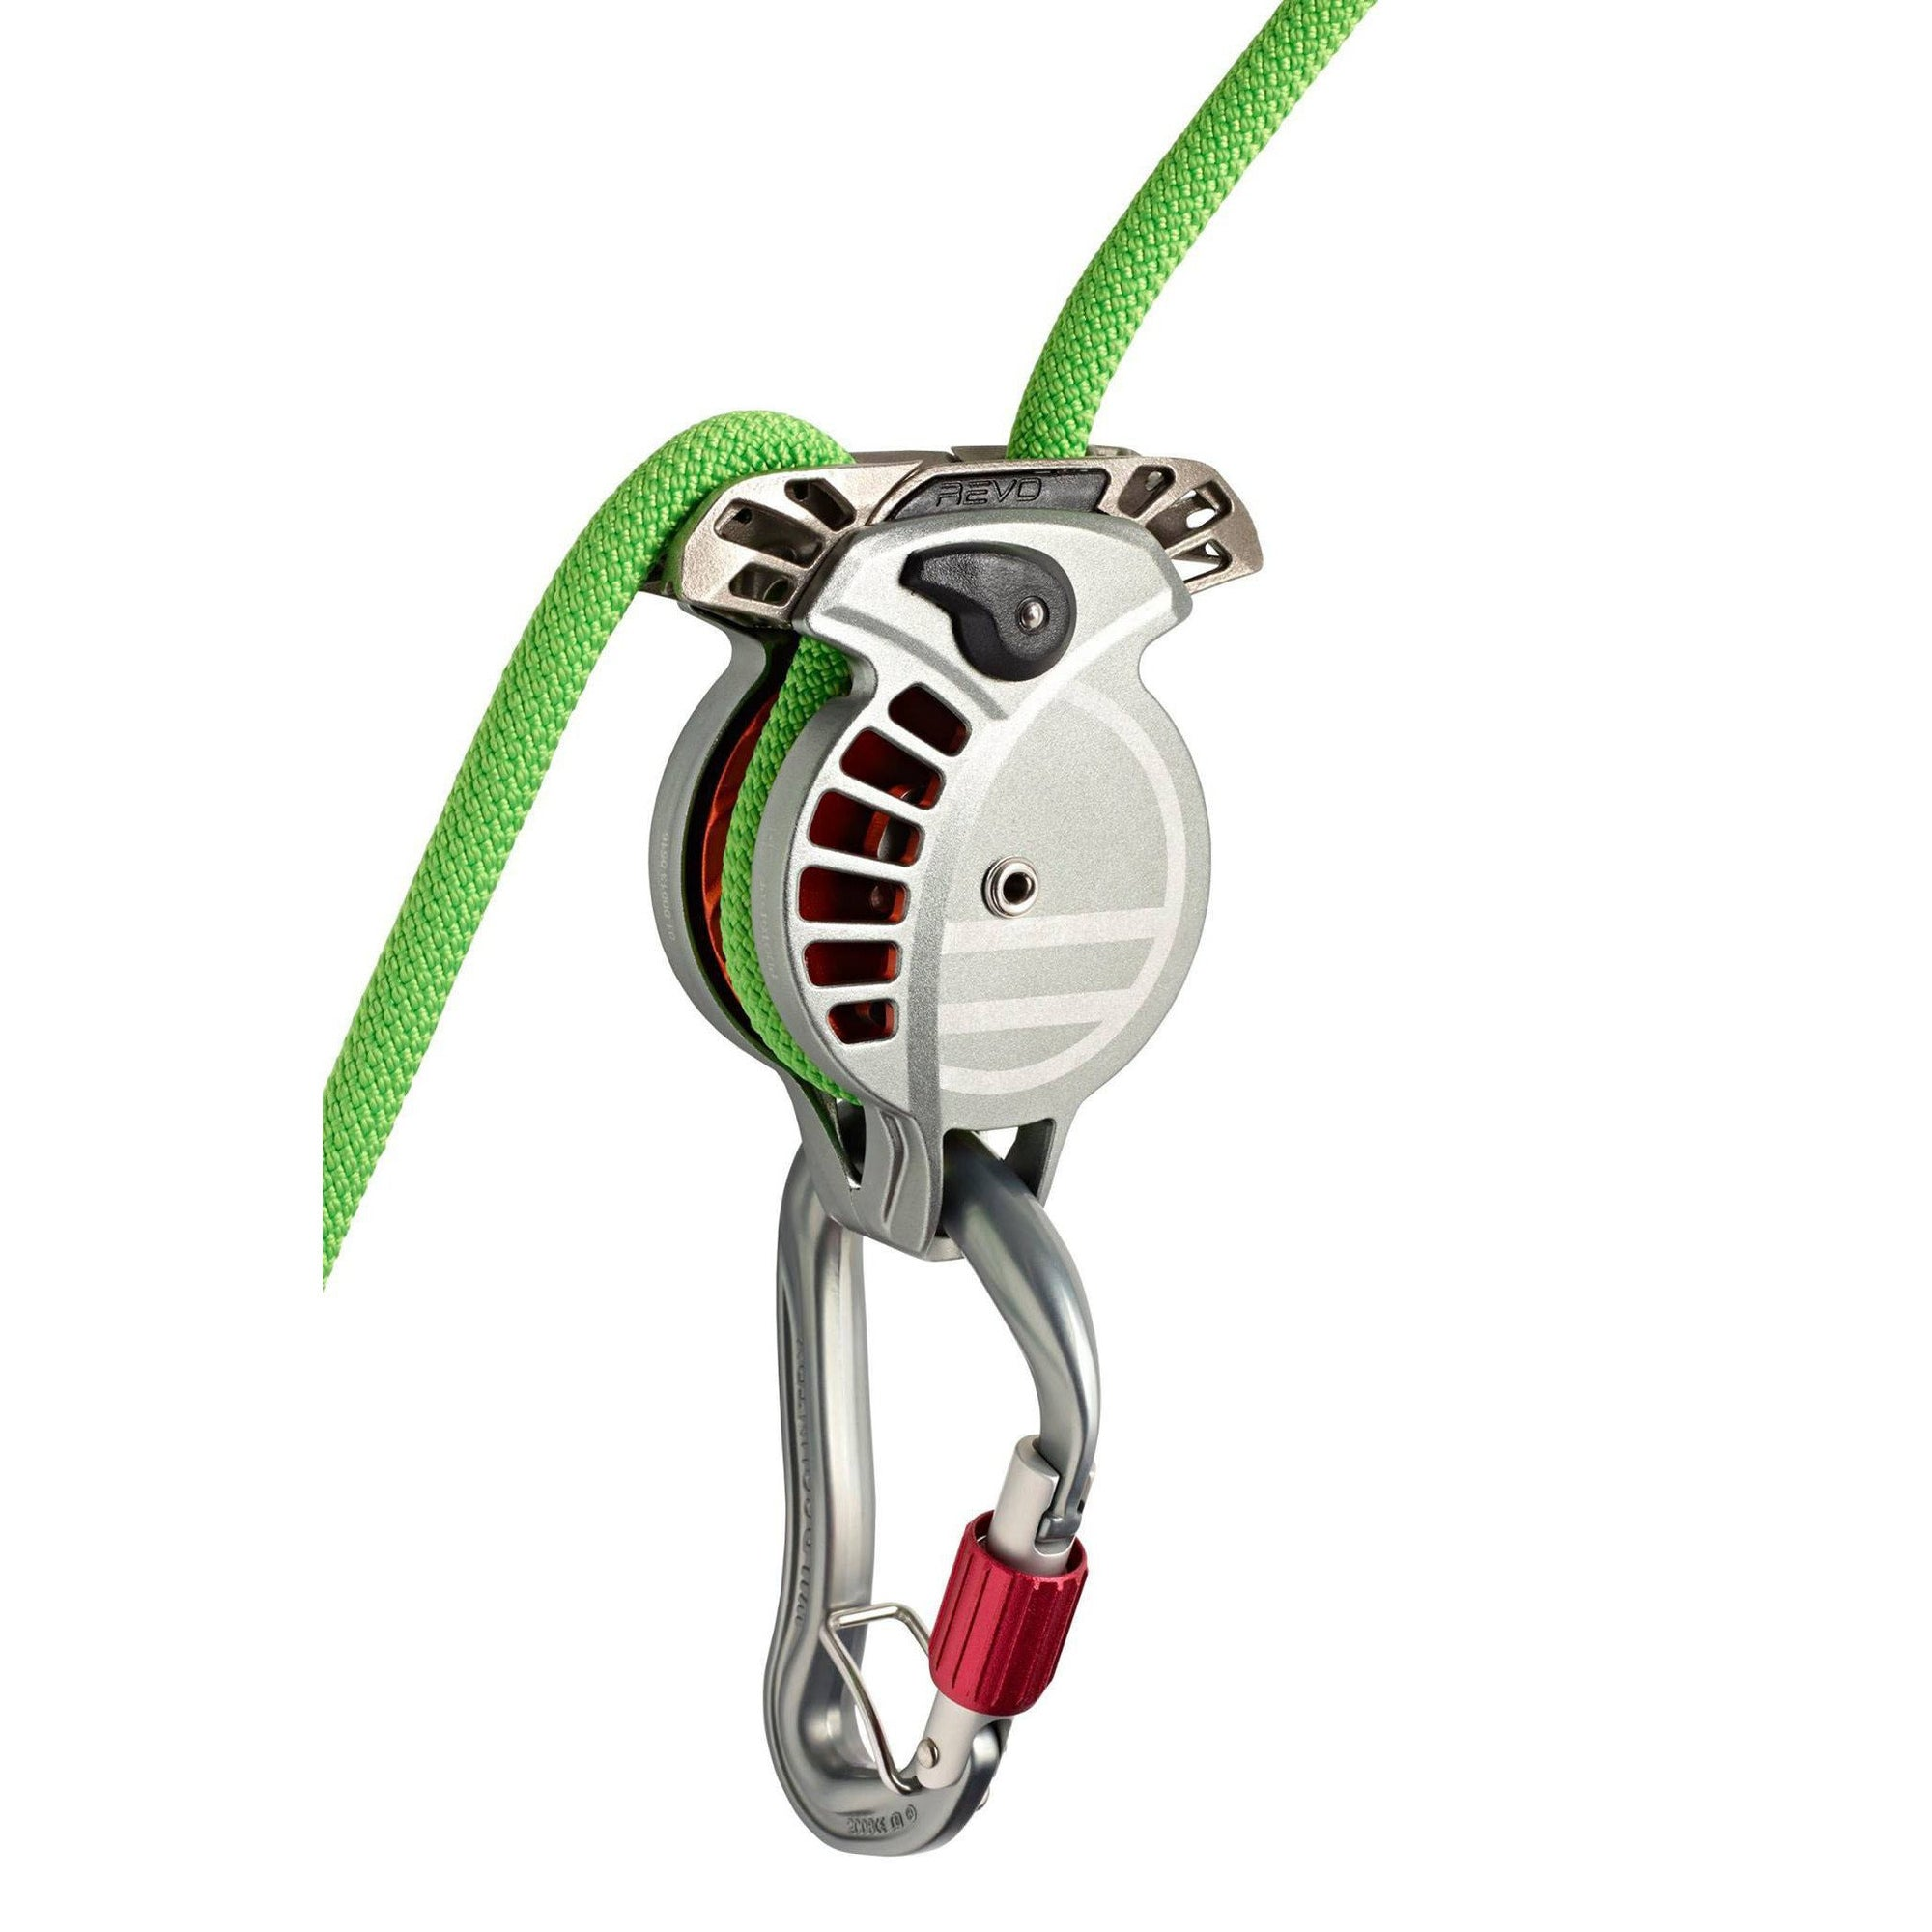 Wild Country REVO belay device, shown in use with a green rope and silver carabiner